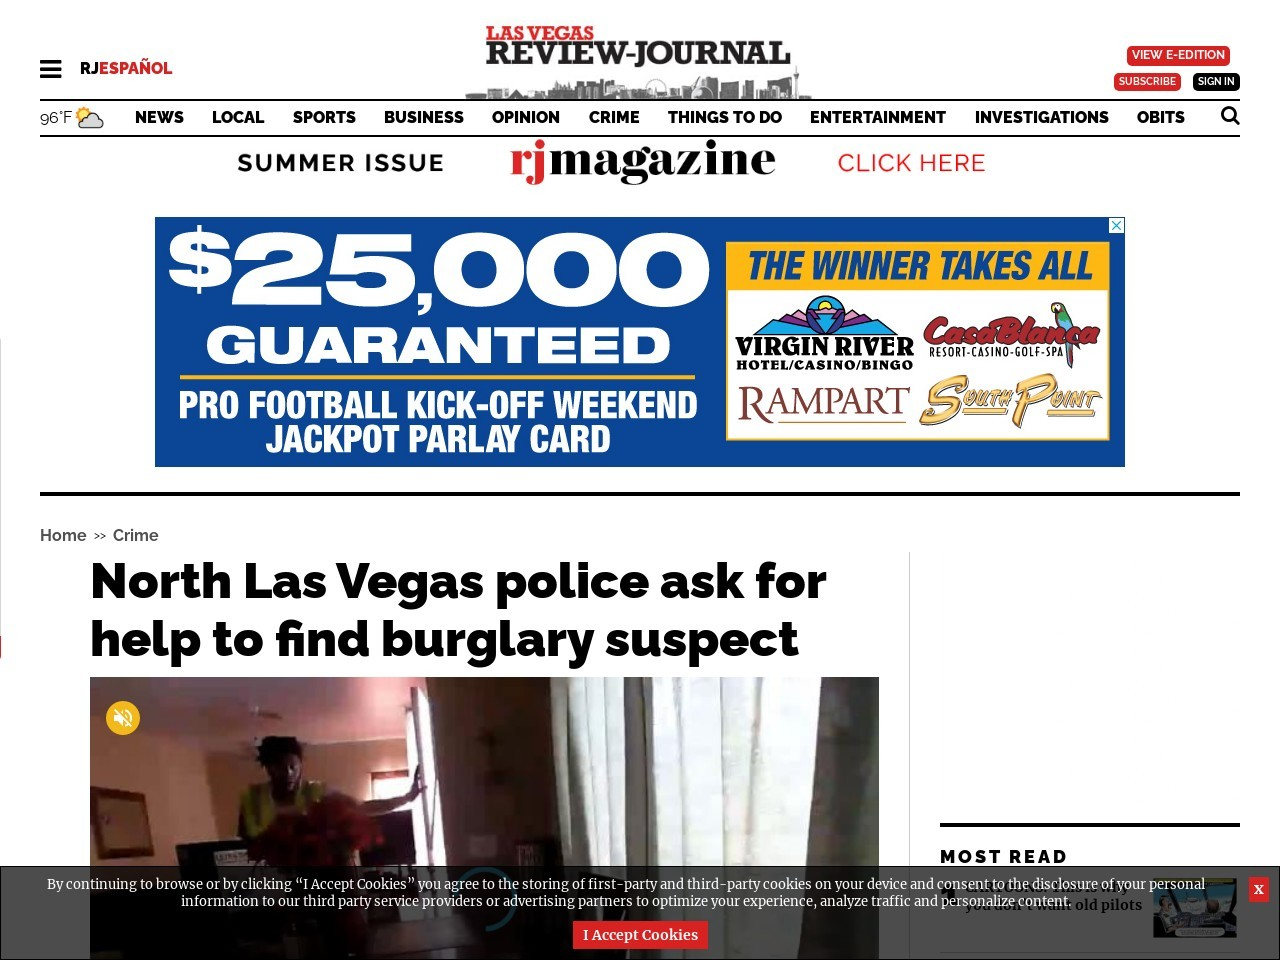 North Las Vegas police ask for help to find burglary suspect